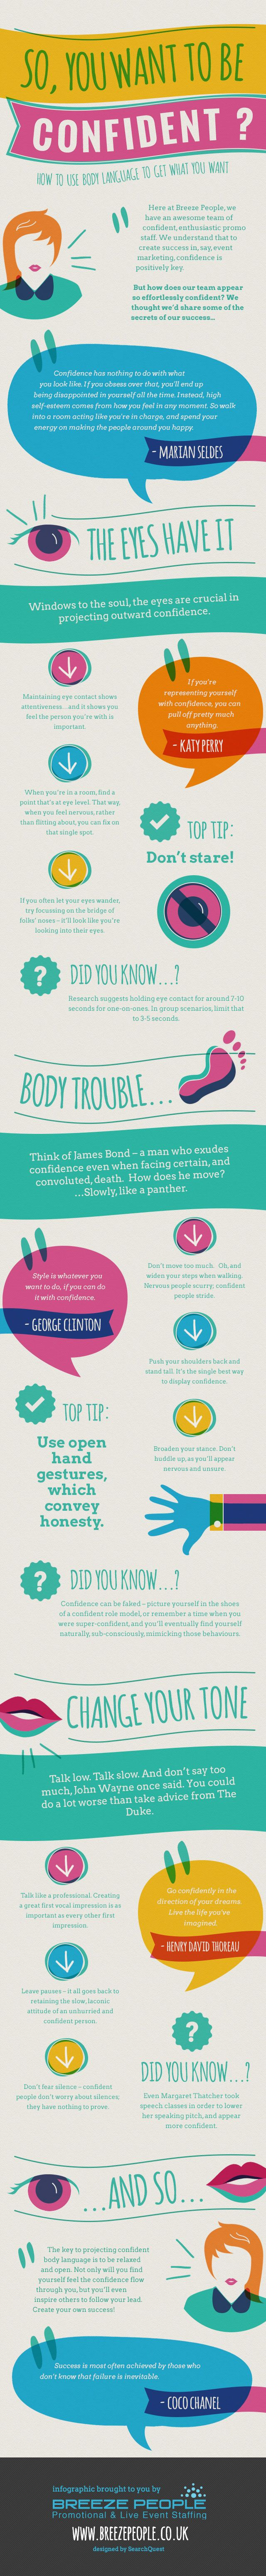 So You Want to Be Confident? How to Use Body Language to Get What You Want [Infographic]   Breeze People